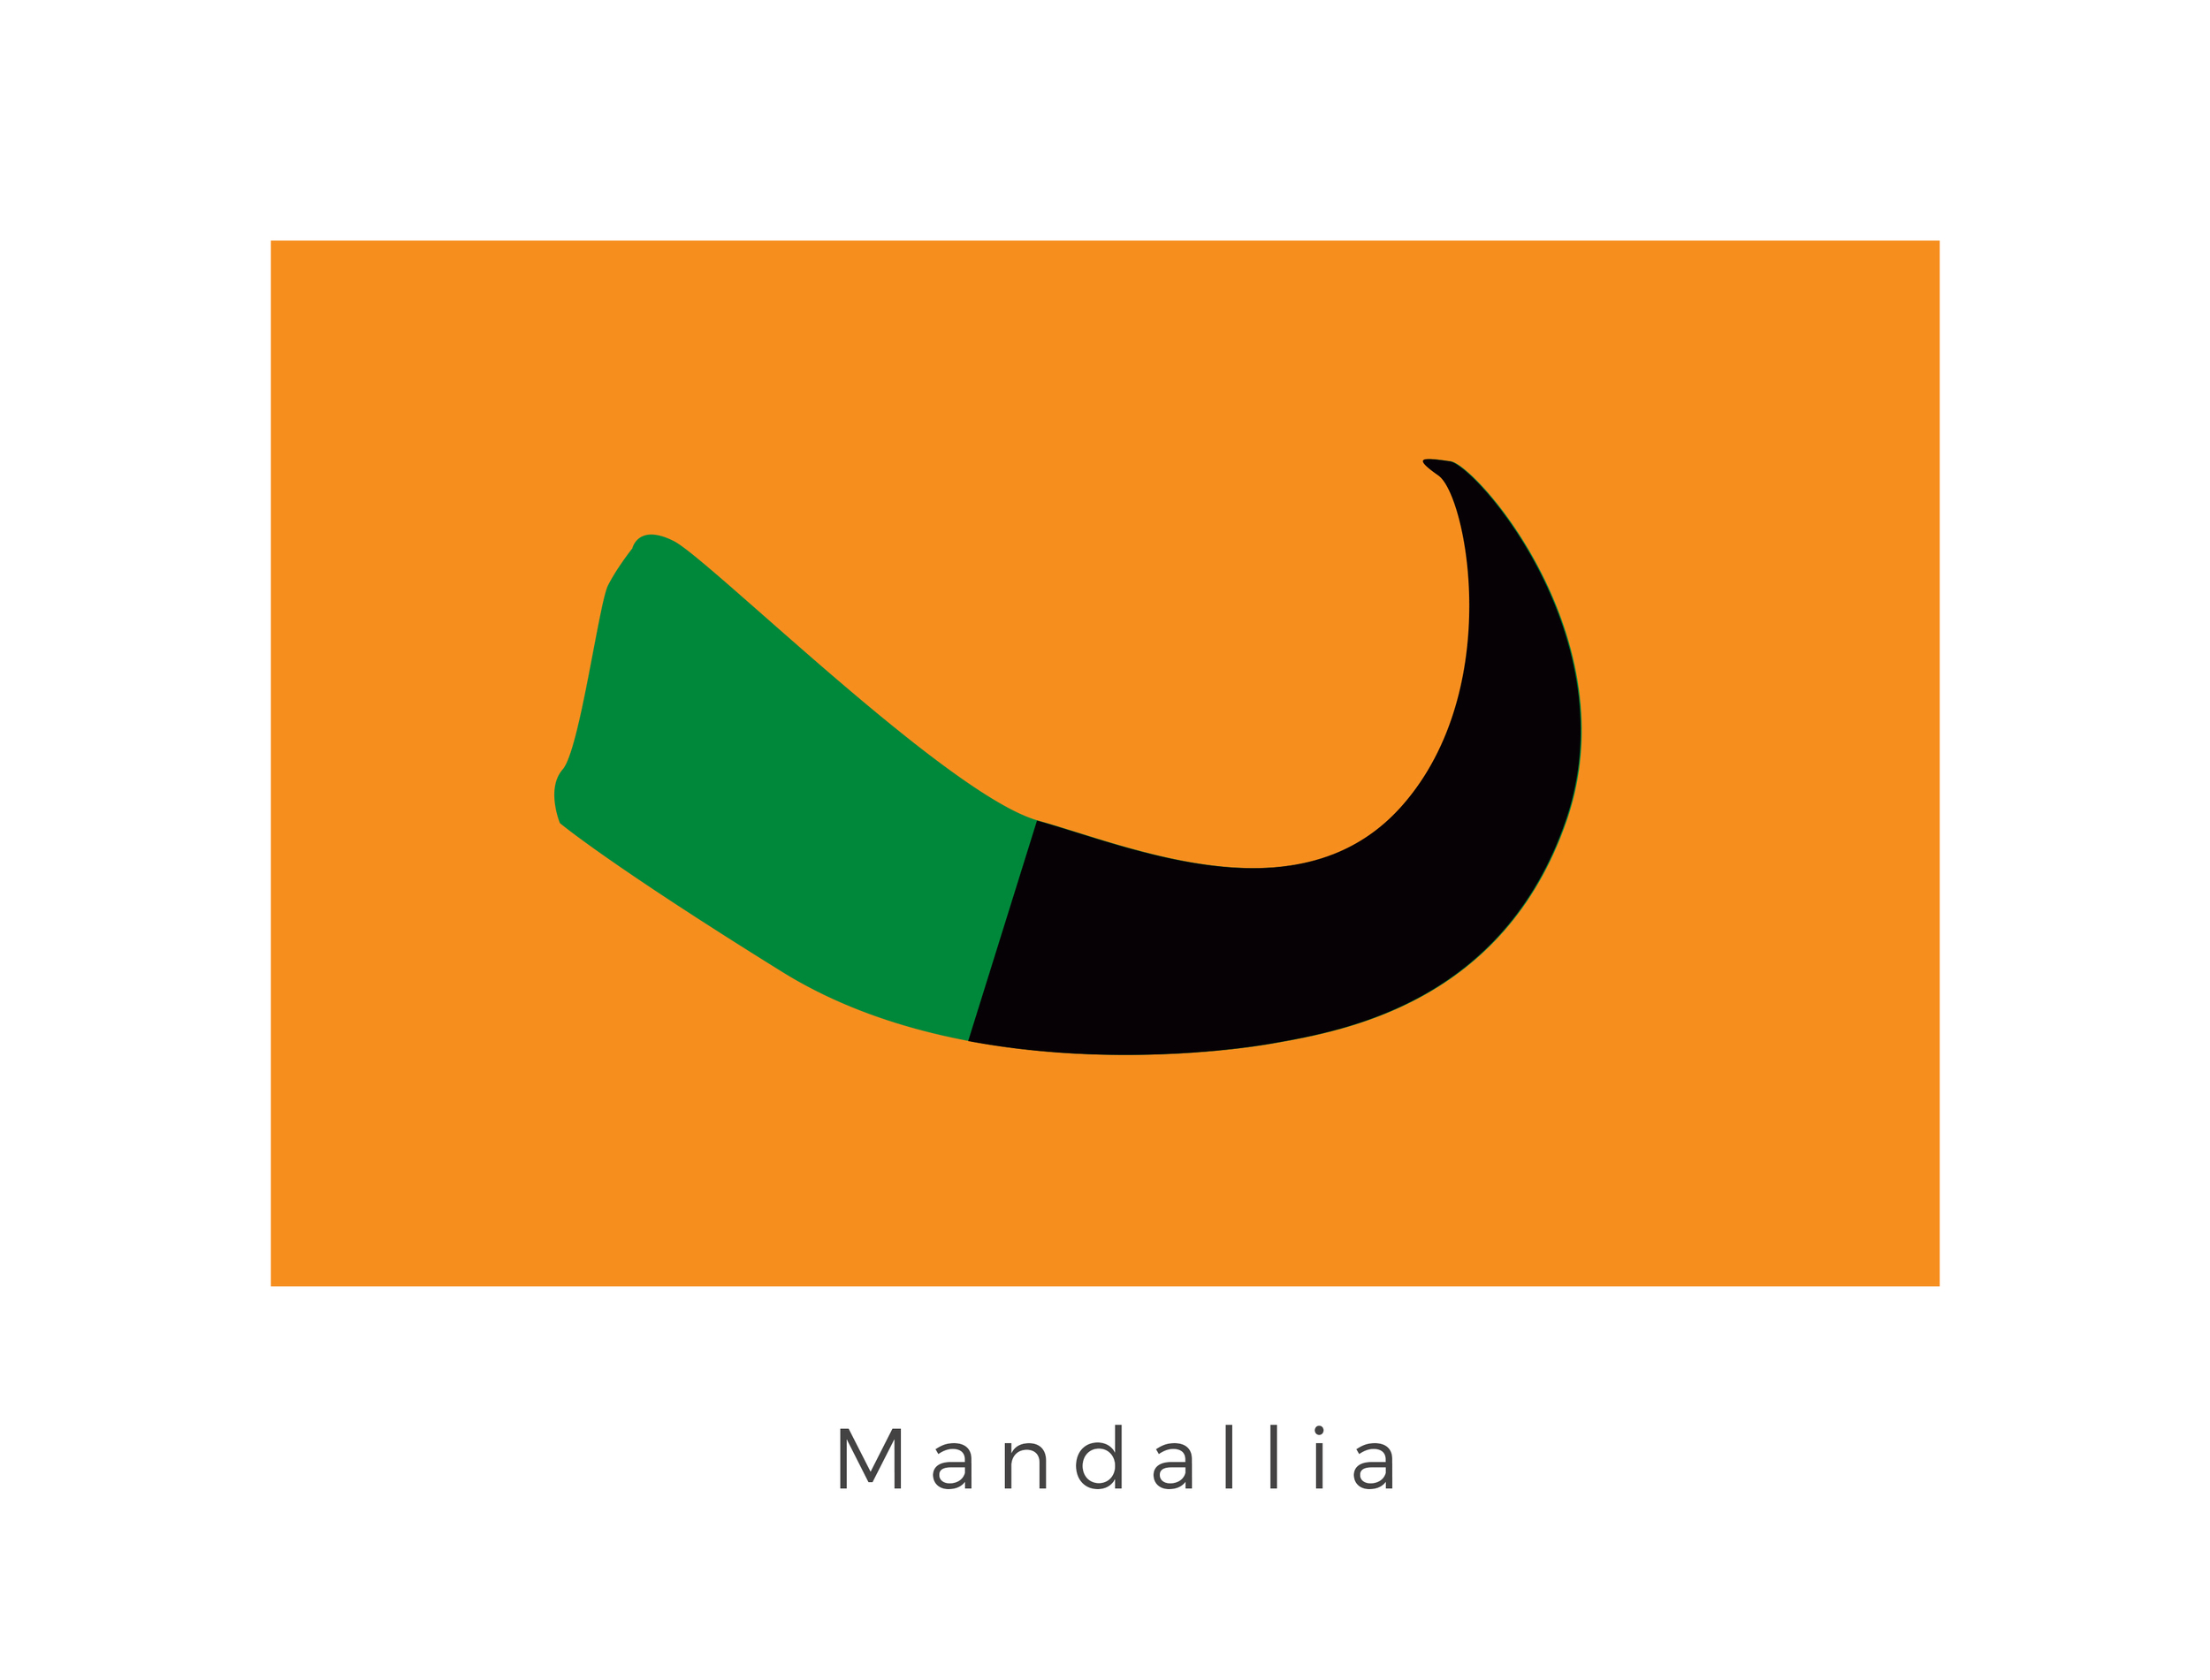 Mandallia  was a planet located in the Mandalore system of the Outer Rim Territories. The homeworld of the Mandallian Giants, a race of physically large and muscular beings raised from birth as warriors, Mandallia was the neighbor world of the Mandalorian's home planet, Mandalore. The two worlds became associated after a failed invasion by the ancient Mandalorian Crusaders displayed the prowess of Mandallia's inhabitants, earning the Mandallian Giants the respect of the Mandalorians. Mandallia became a part of Mandalorian space following the Mandalorians' conquest of expansion during the early years of the Galactic Republic, with many Mandallians having earned the right to join the Mandalorians and fight alongside the original Taung race. The tusk symbol is that of the Mandalore. This was adopted when the planets became jointly associated.